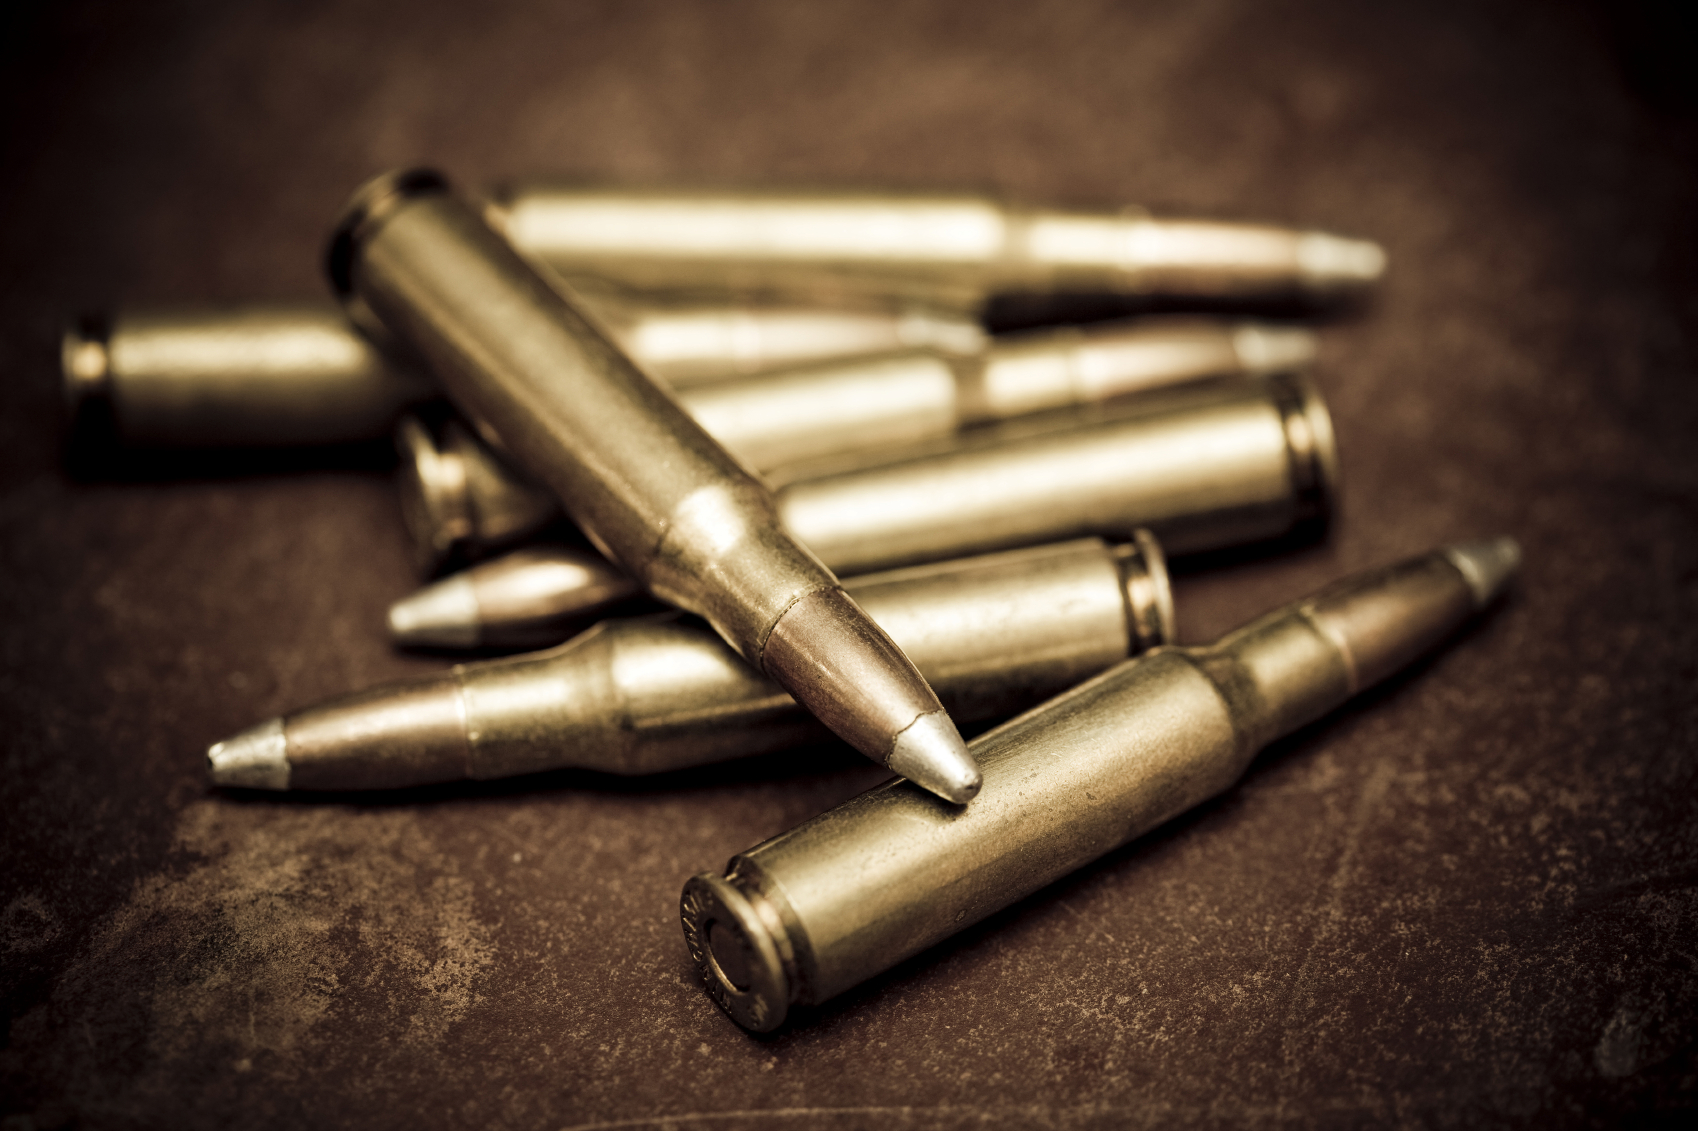 223 Bullet Manufacture